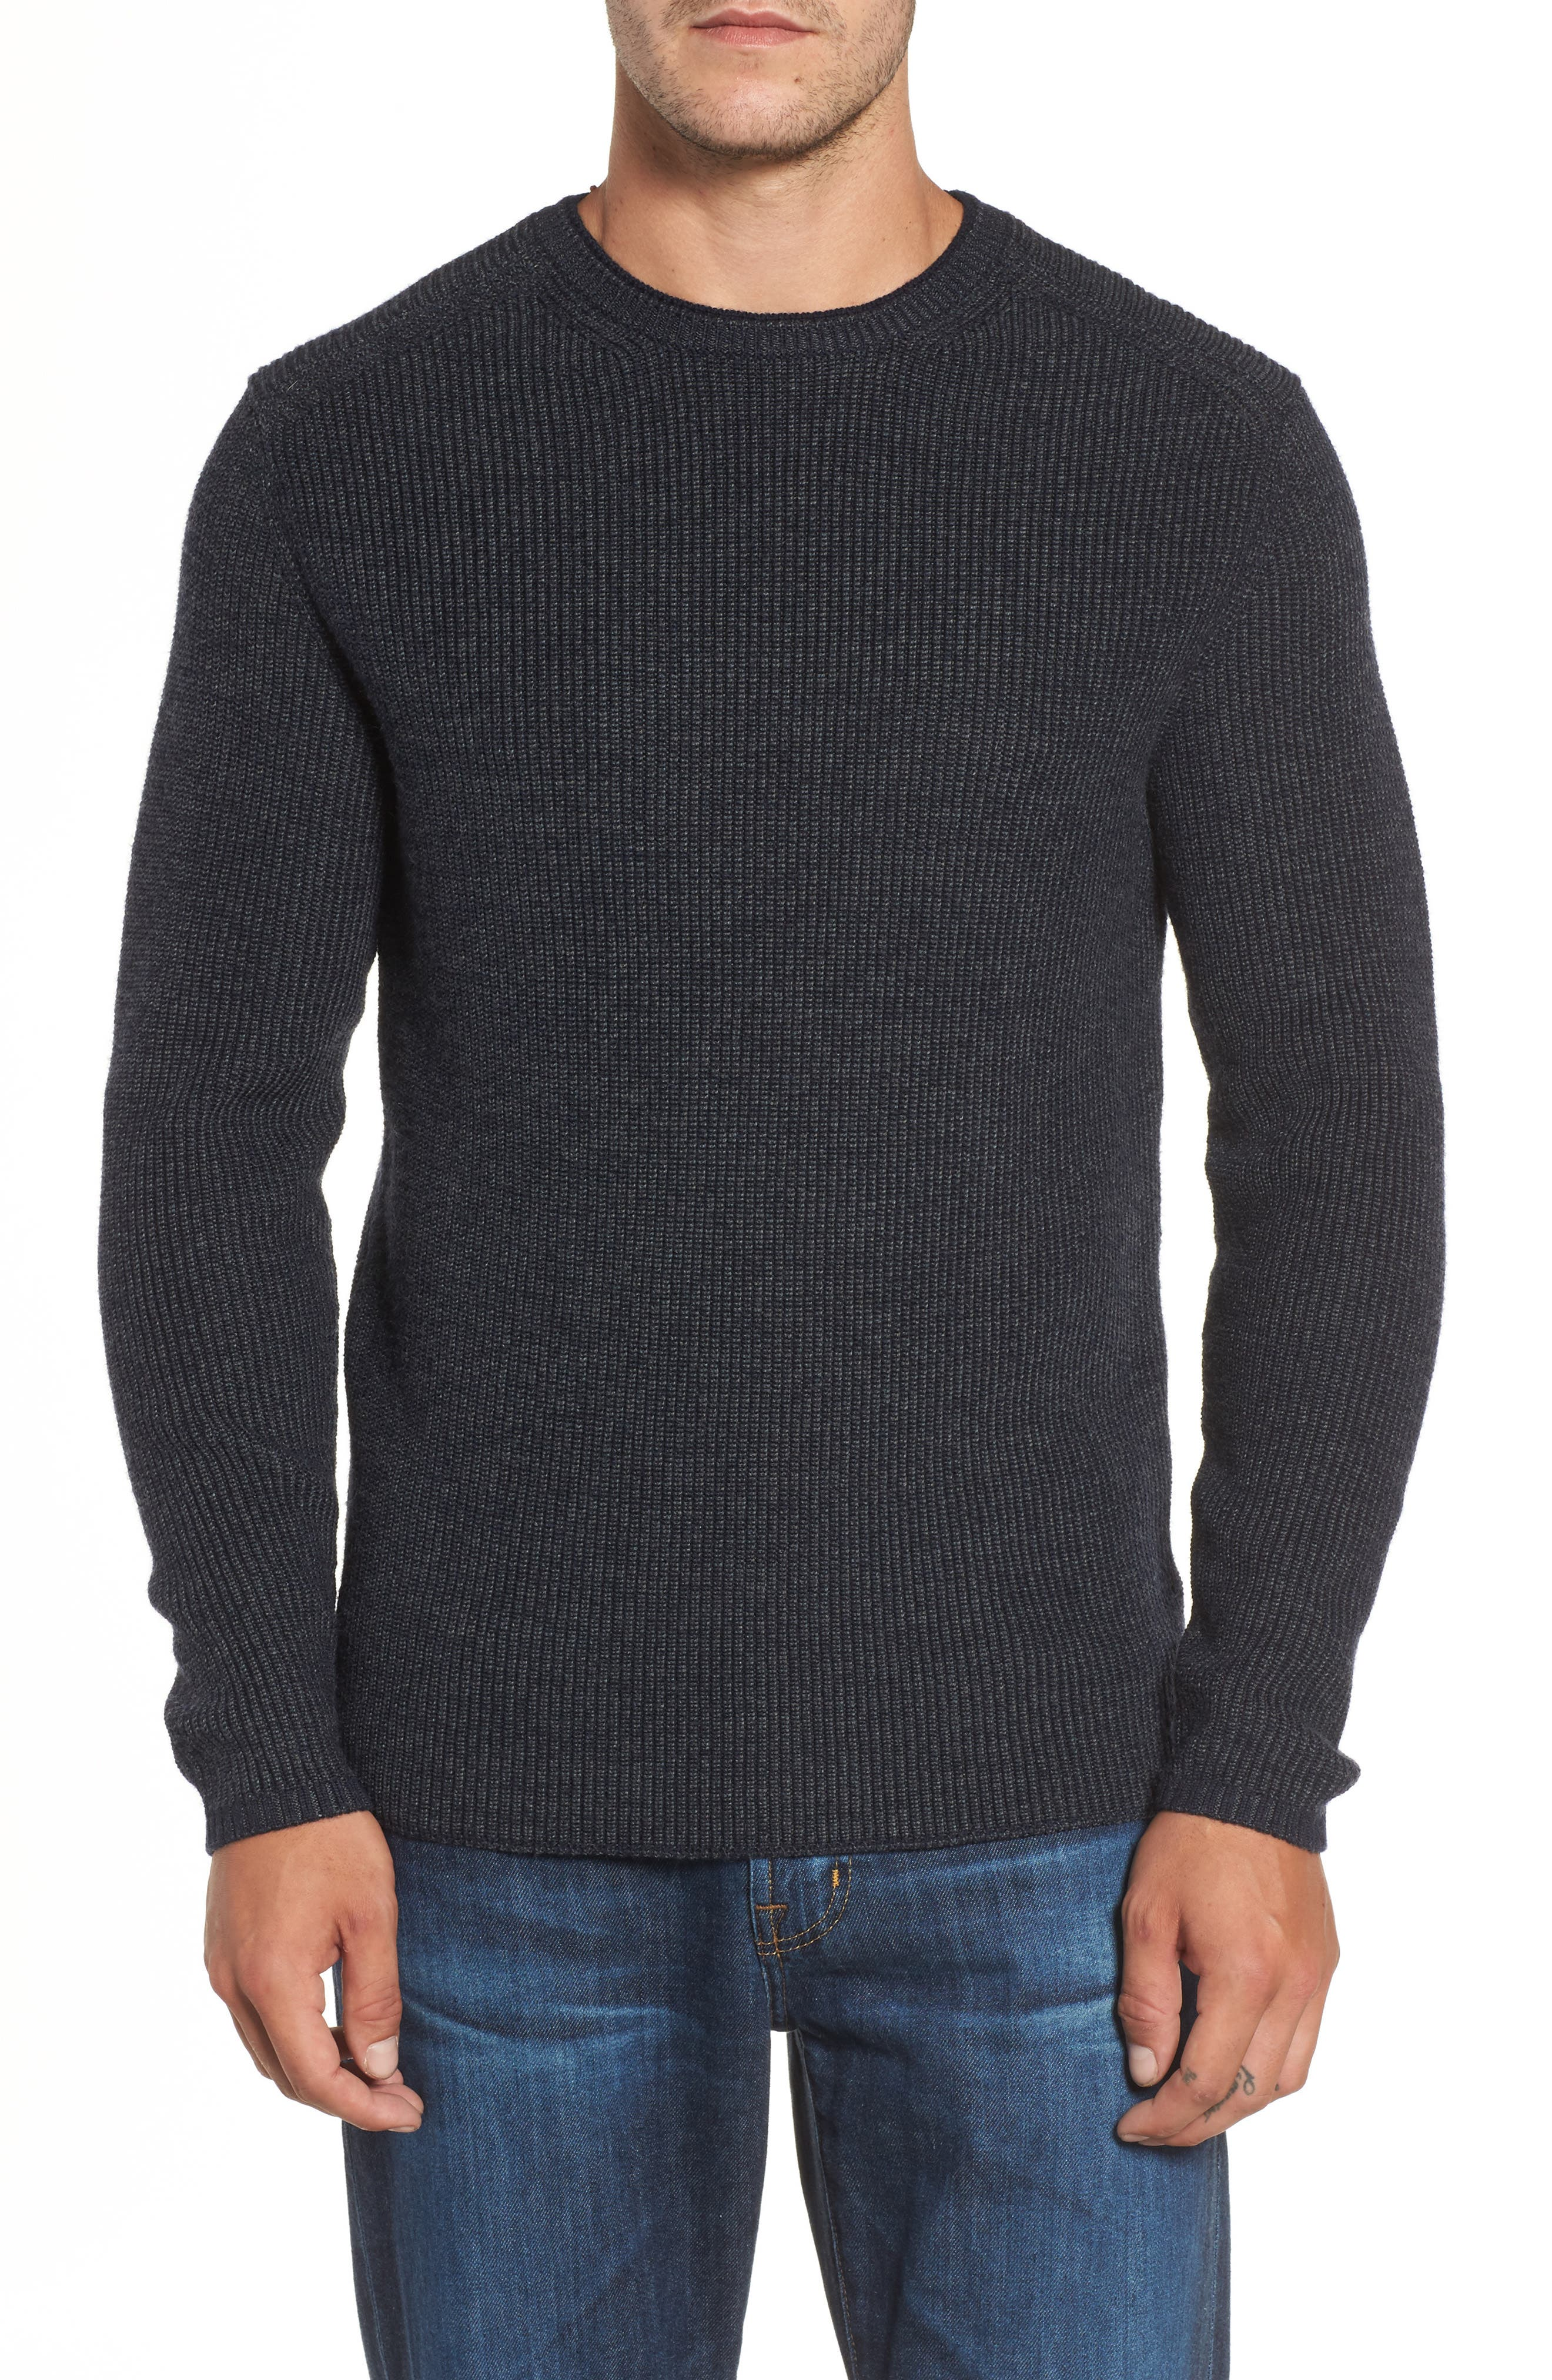 Whalers Bay Ribbed Merino Wool Sweater,                         Main,                         color, Night